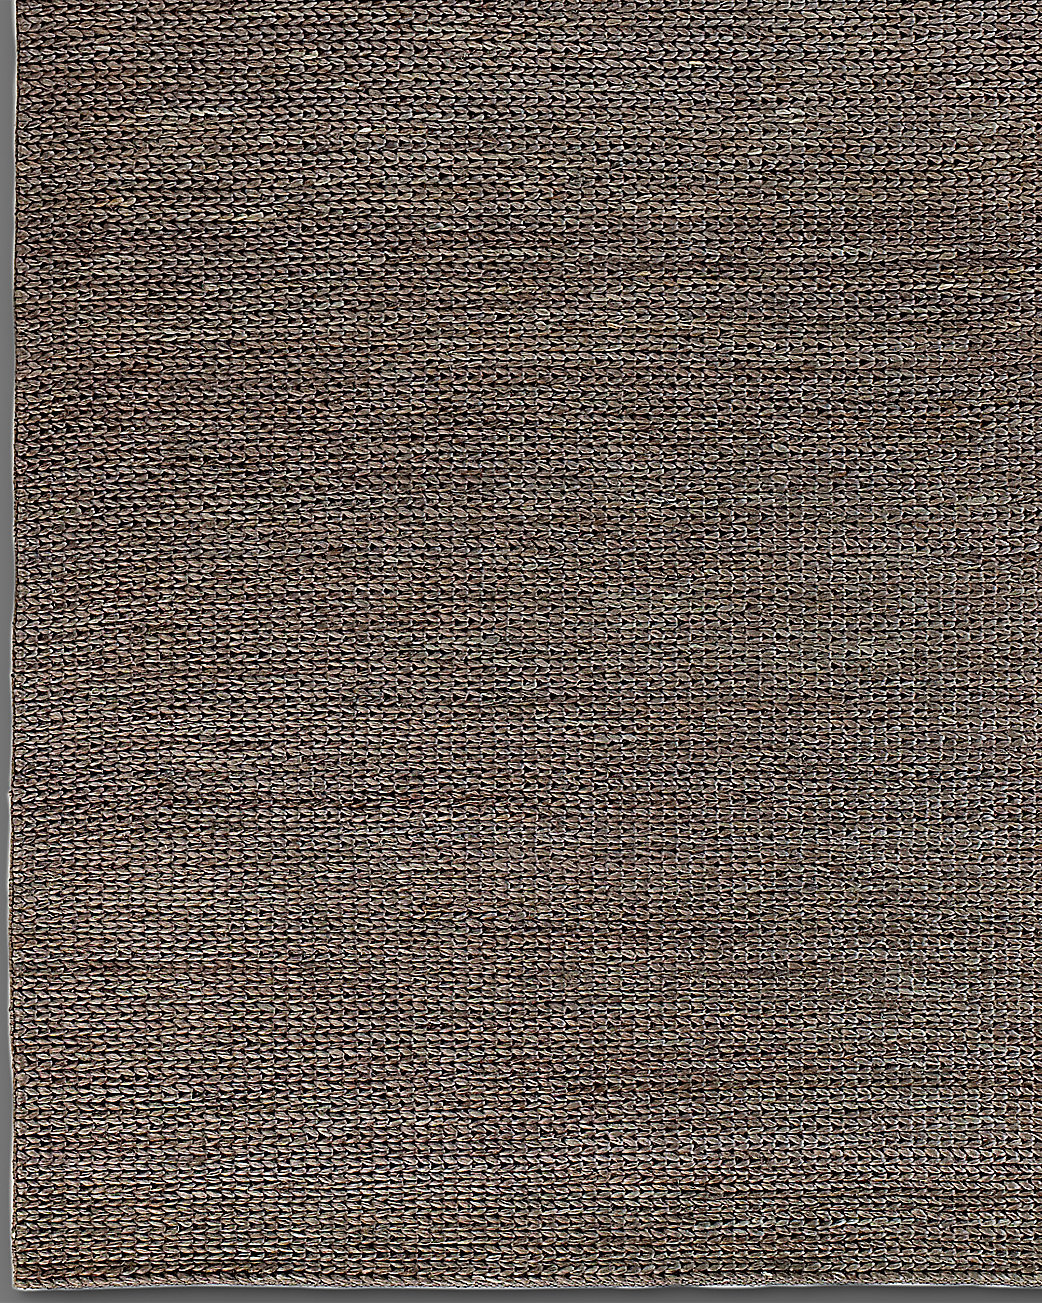 Hand-Braided Jute Rug - Chocolate